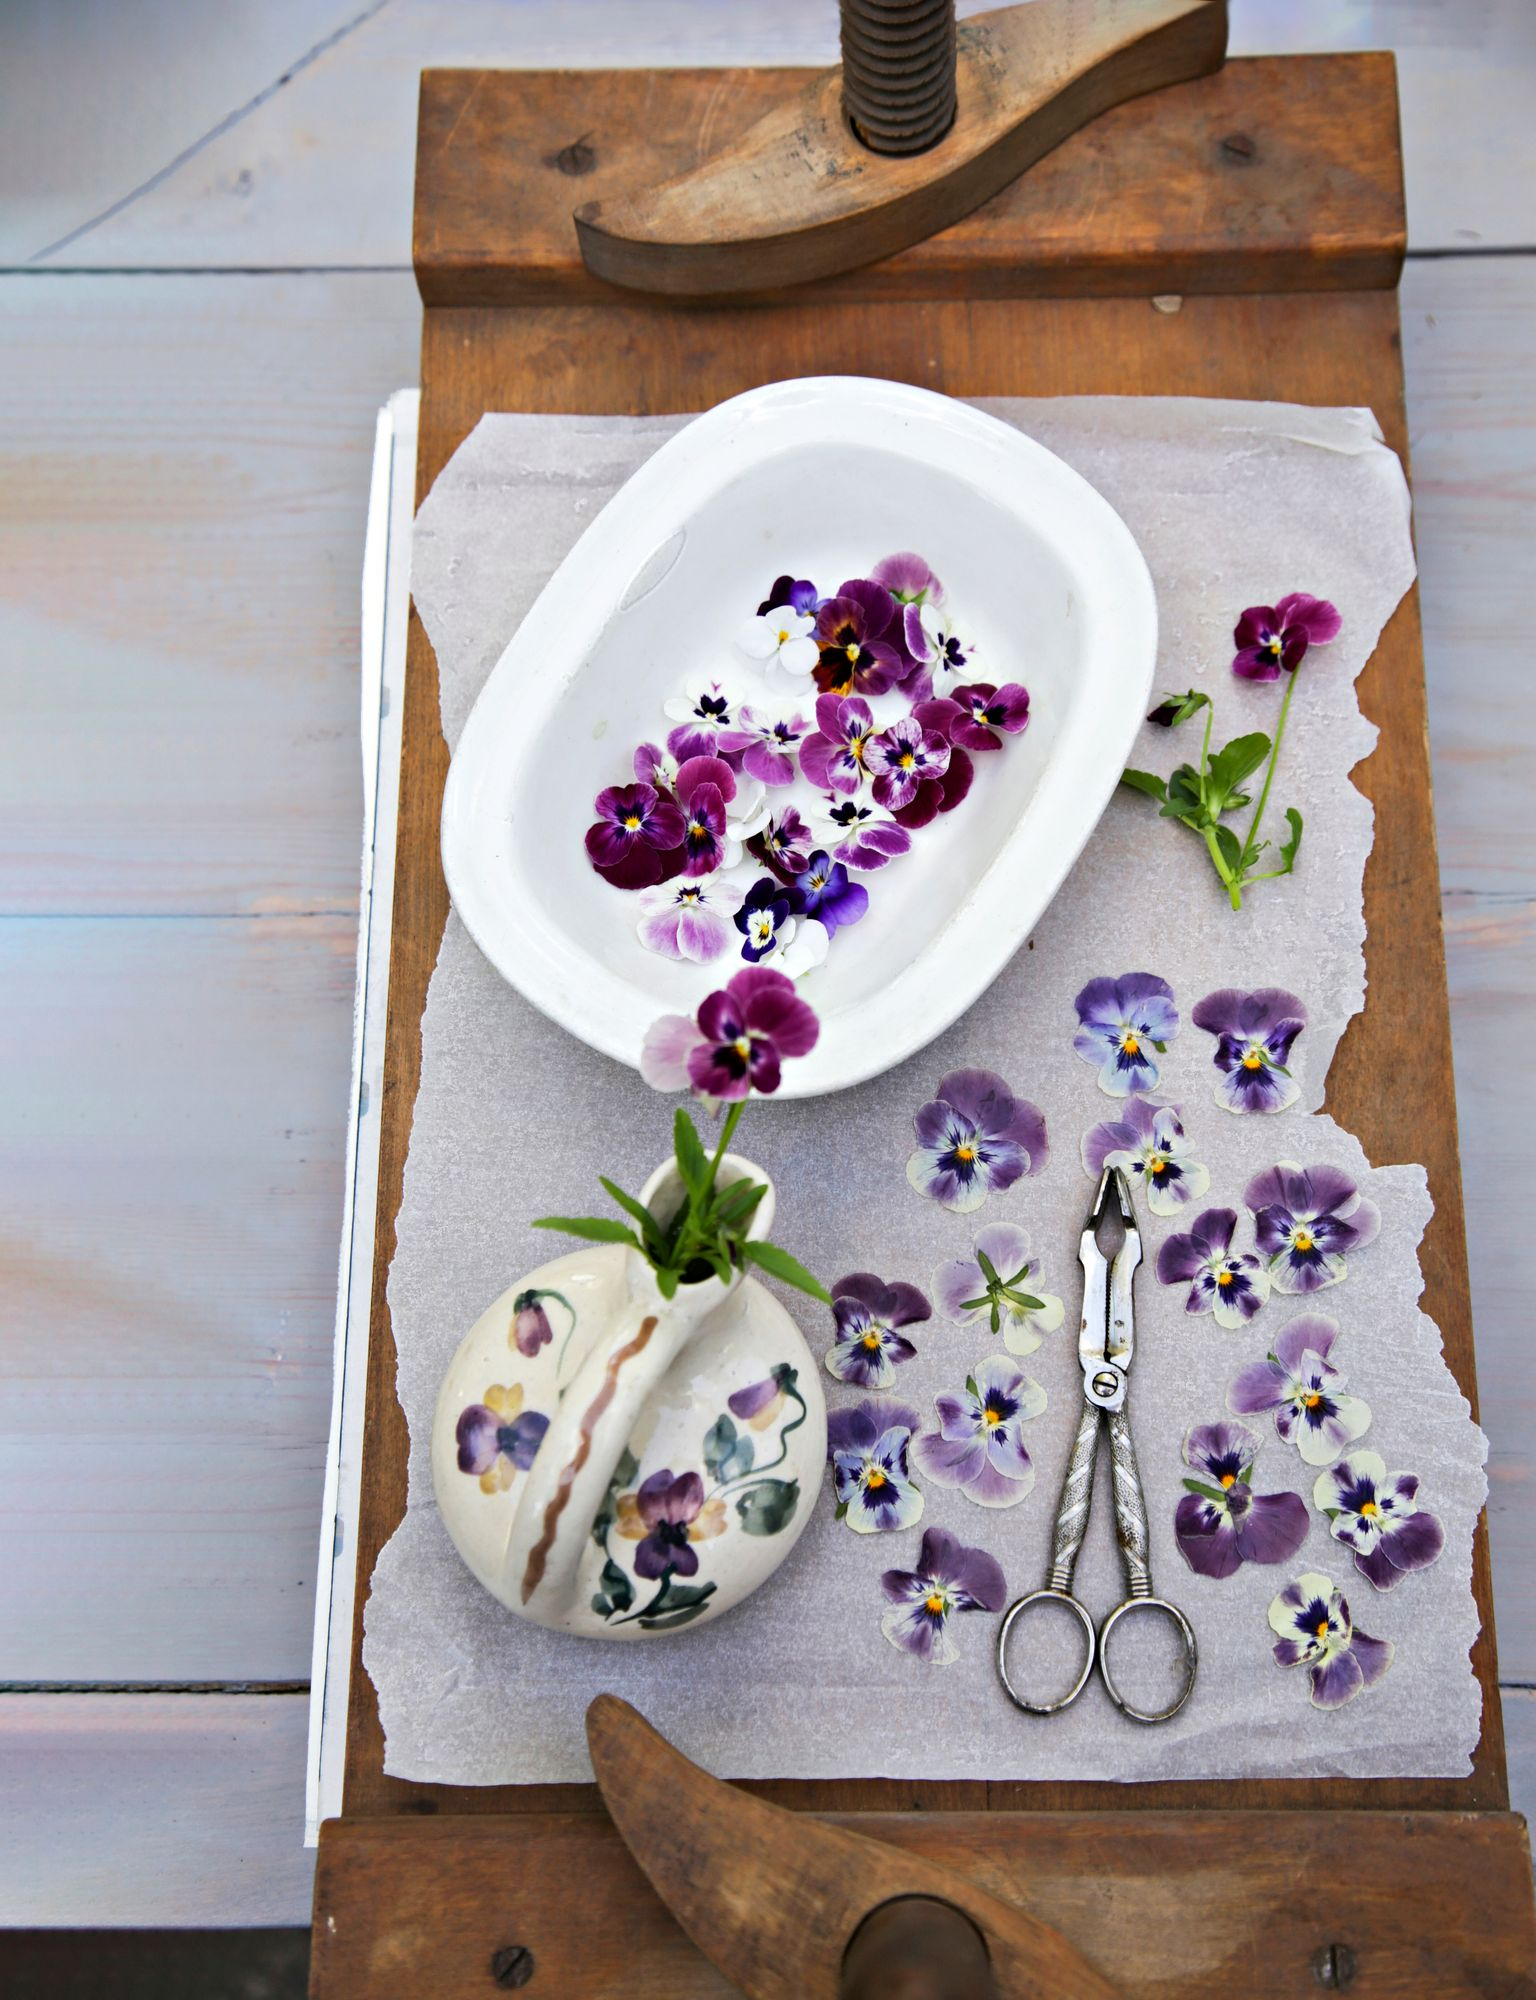 Edible flowers can be preserved for the winter season by drying them.  The most beautiful are the flowers pressed smooth under the weight between two thin papers.